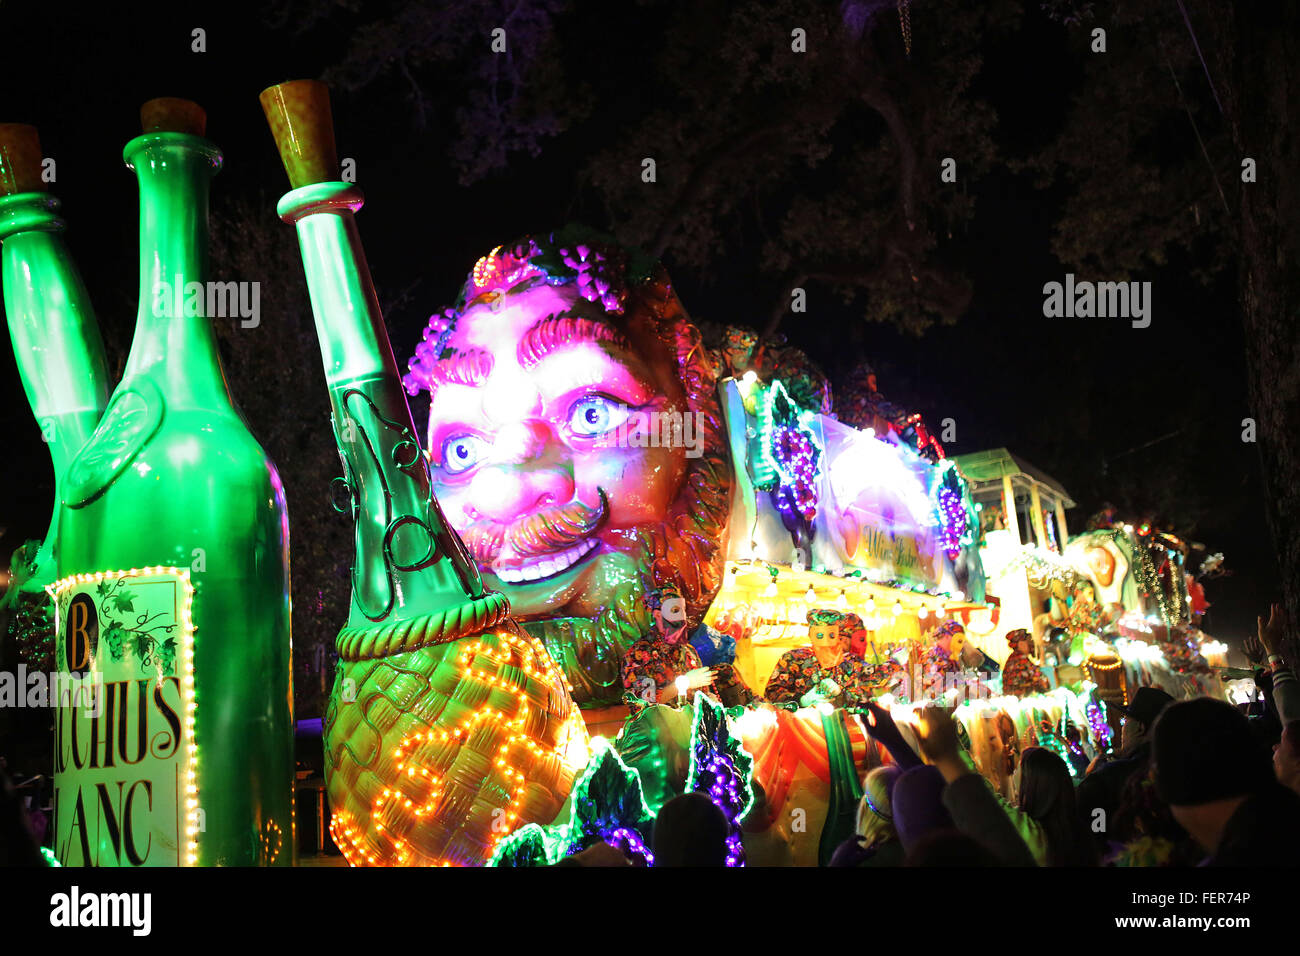 New Orleans, LOUISIANA, USA. 7th Feb, 2016. A float in the Krewe of Bacchus Mardi Gras Parade on February 07, 2016 Stock Photo